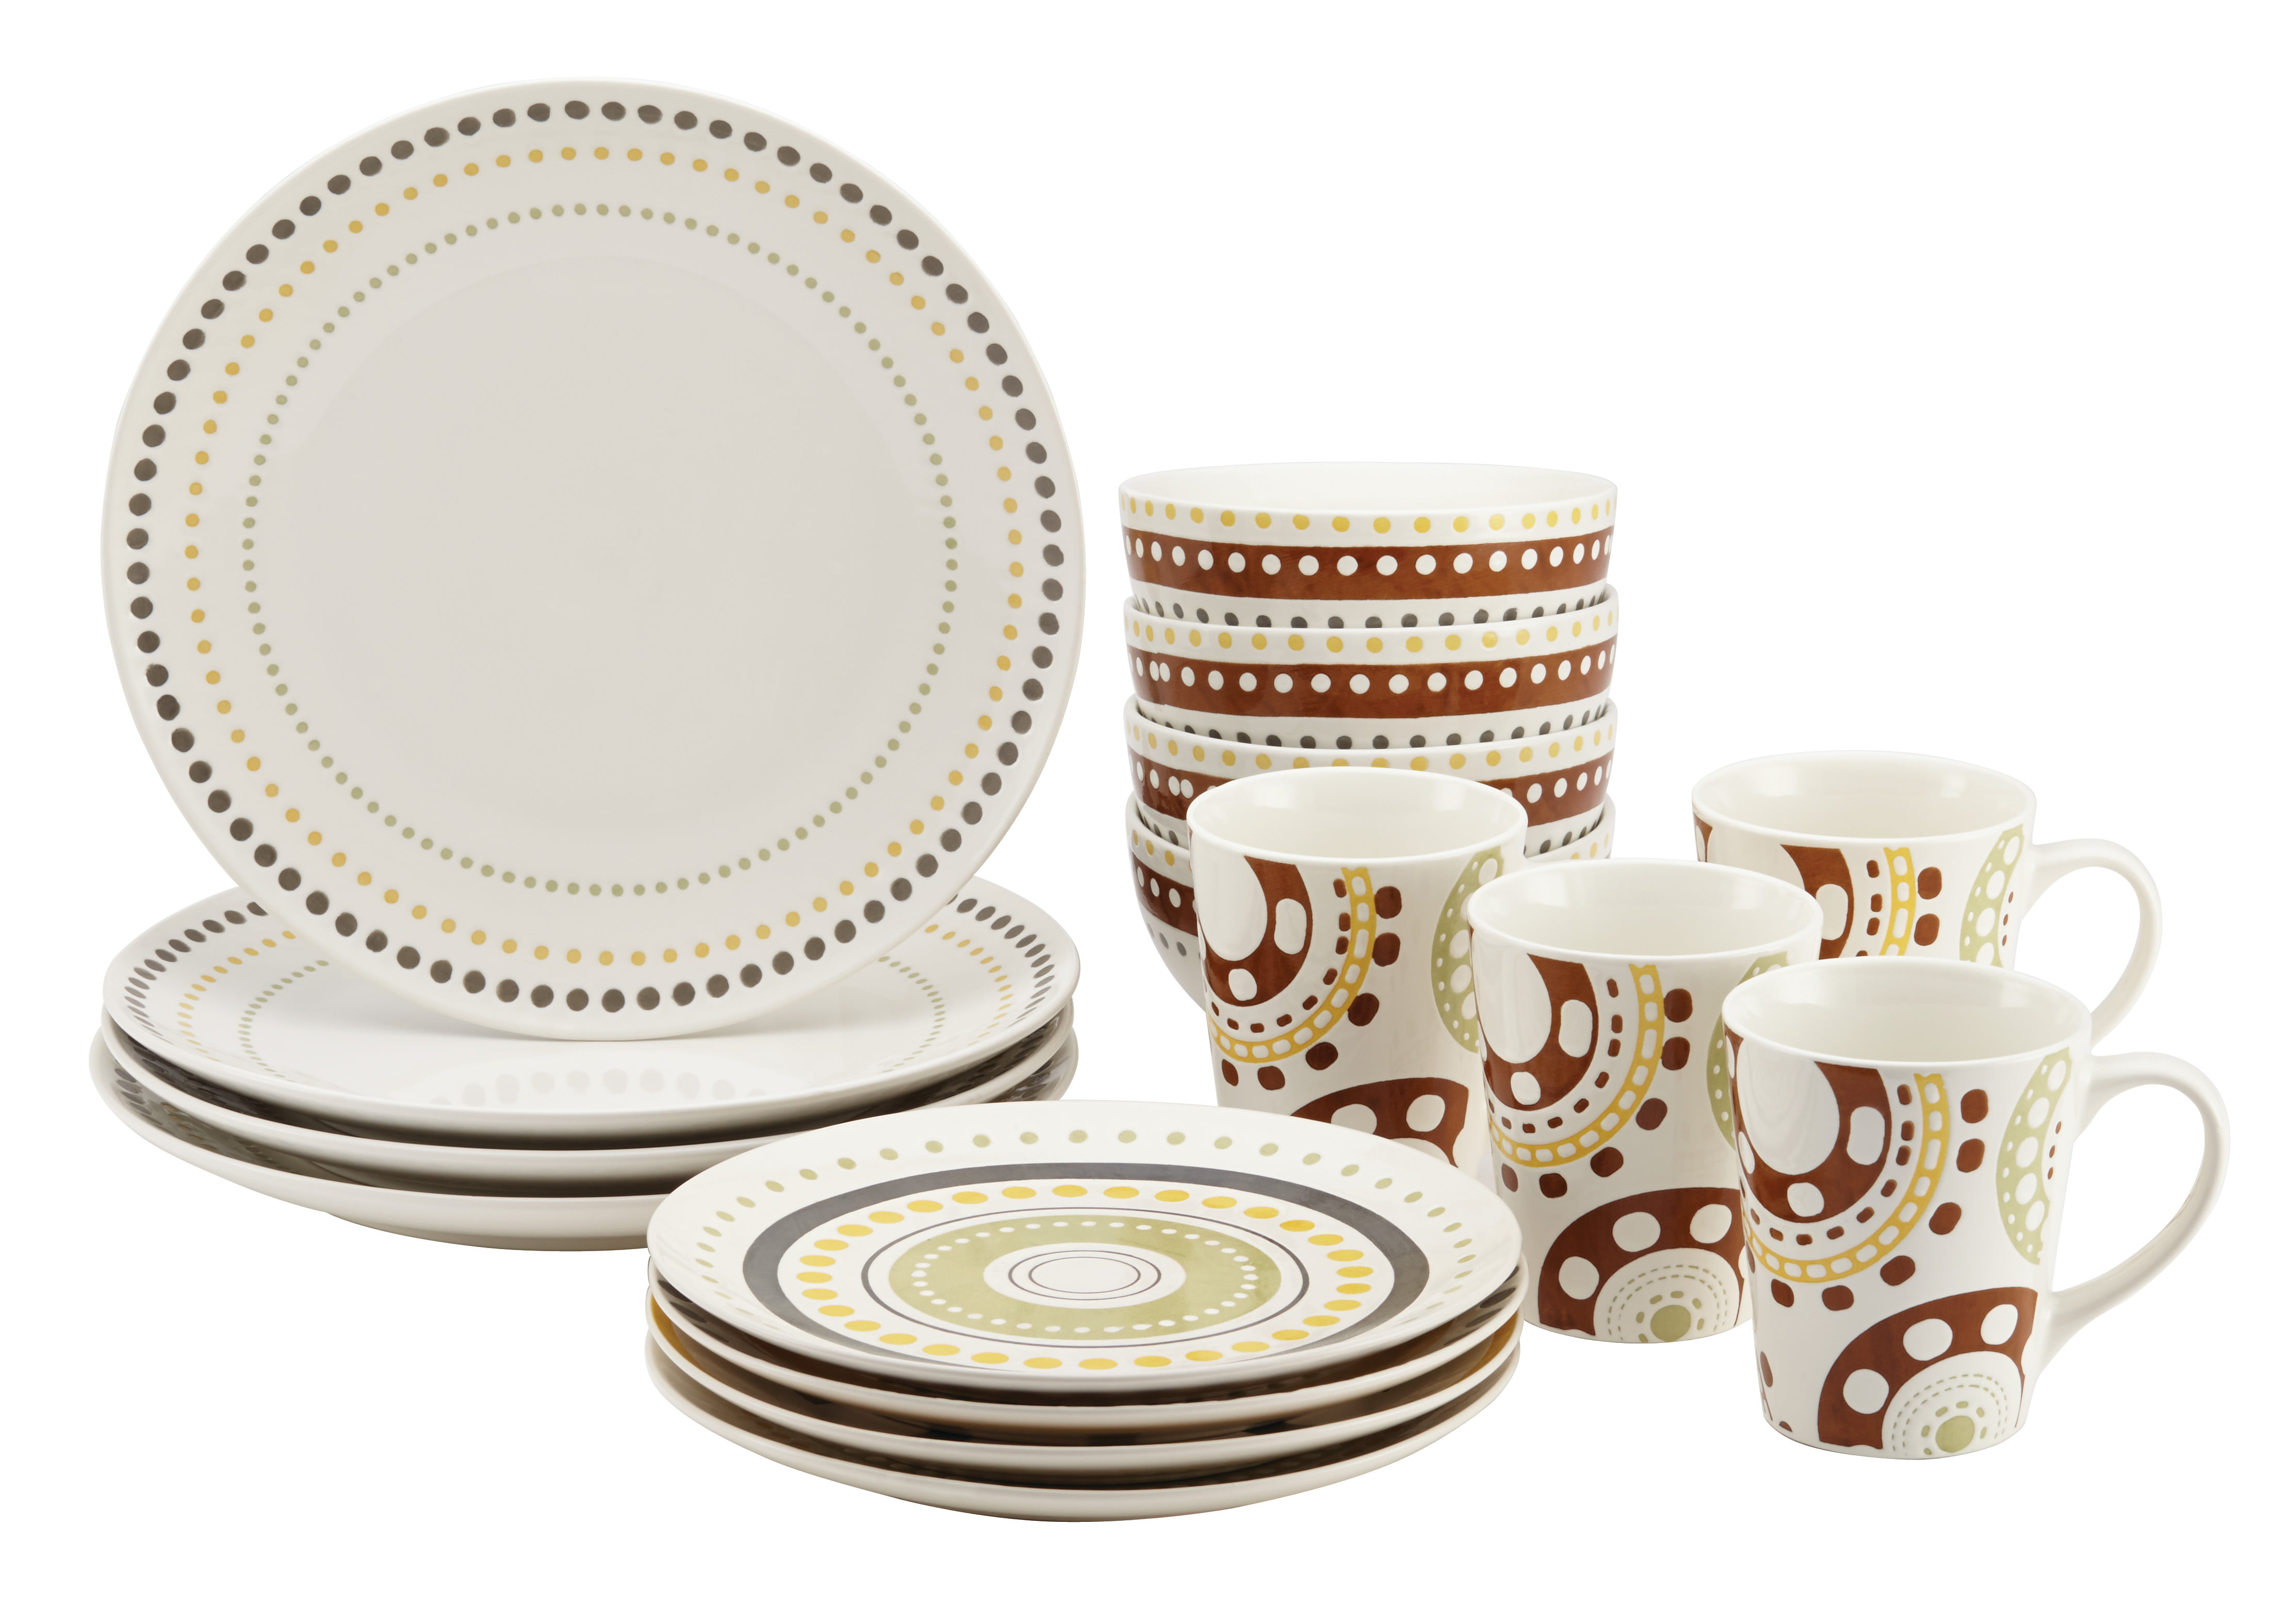 Rachael Ray Circles and Dots Stoneware 16-Piece Dinnerware Set - Walmart.com  sc 1 st  Walmart & Rachael Ray Circles and Dots Stoneware 16-Piece Dinnerware Set ...